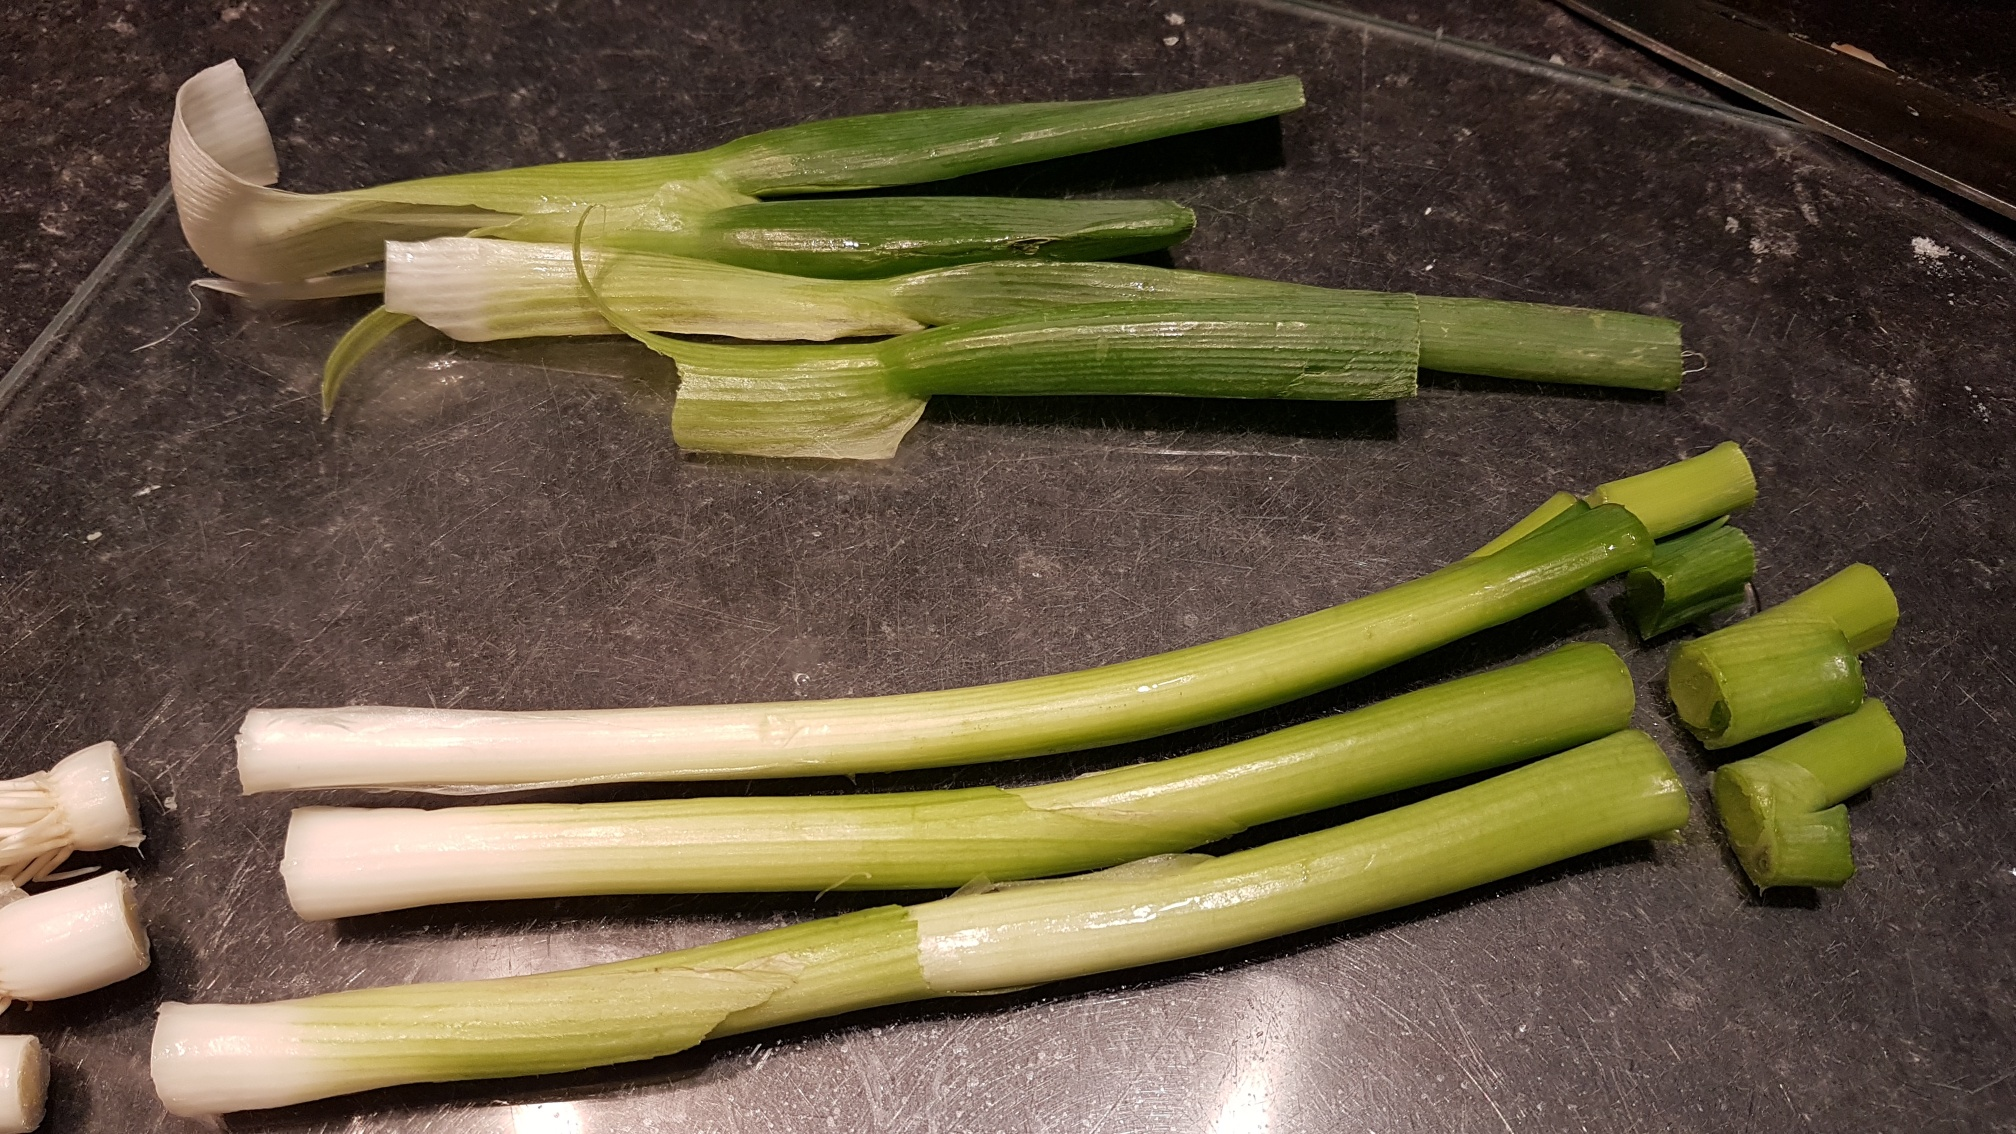 This image shows how to top and tail the spring onions